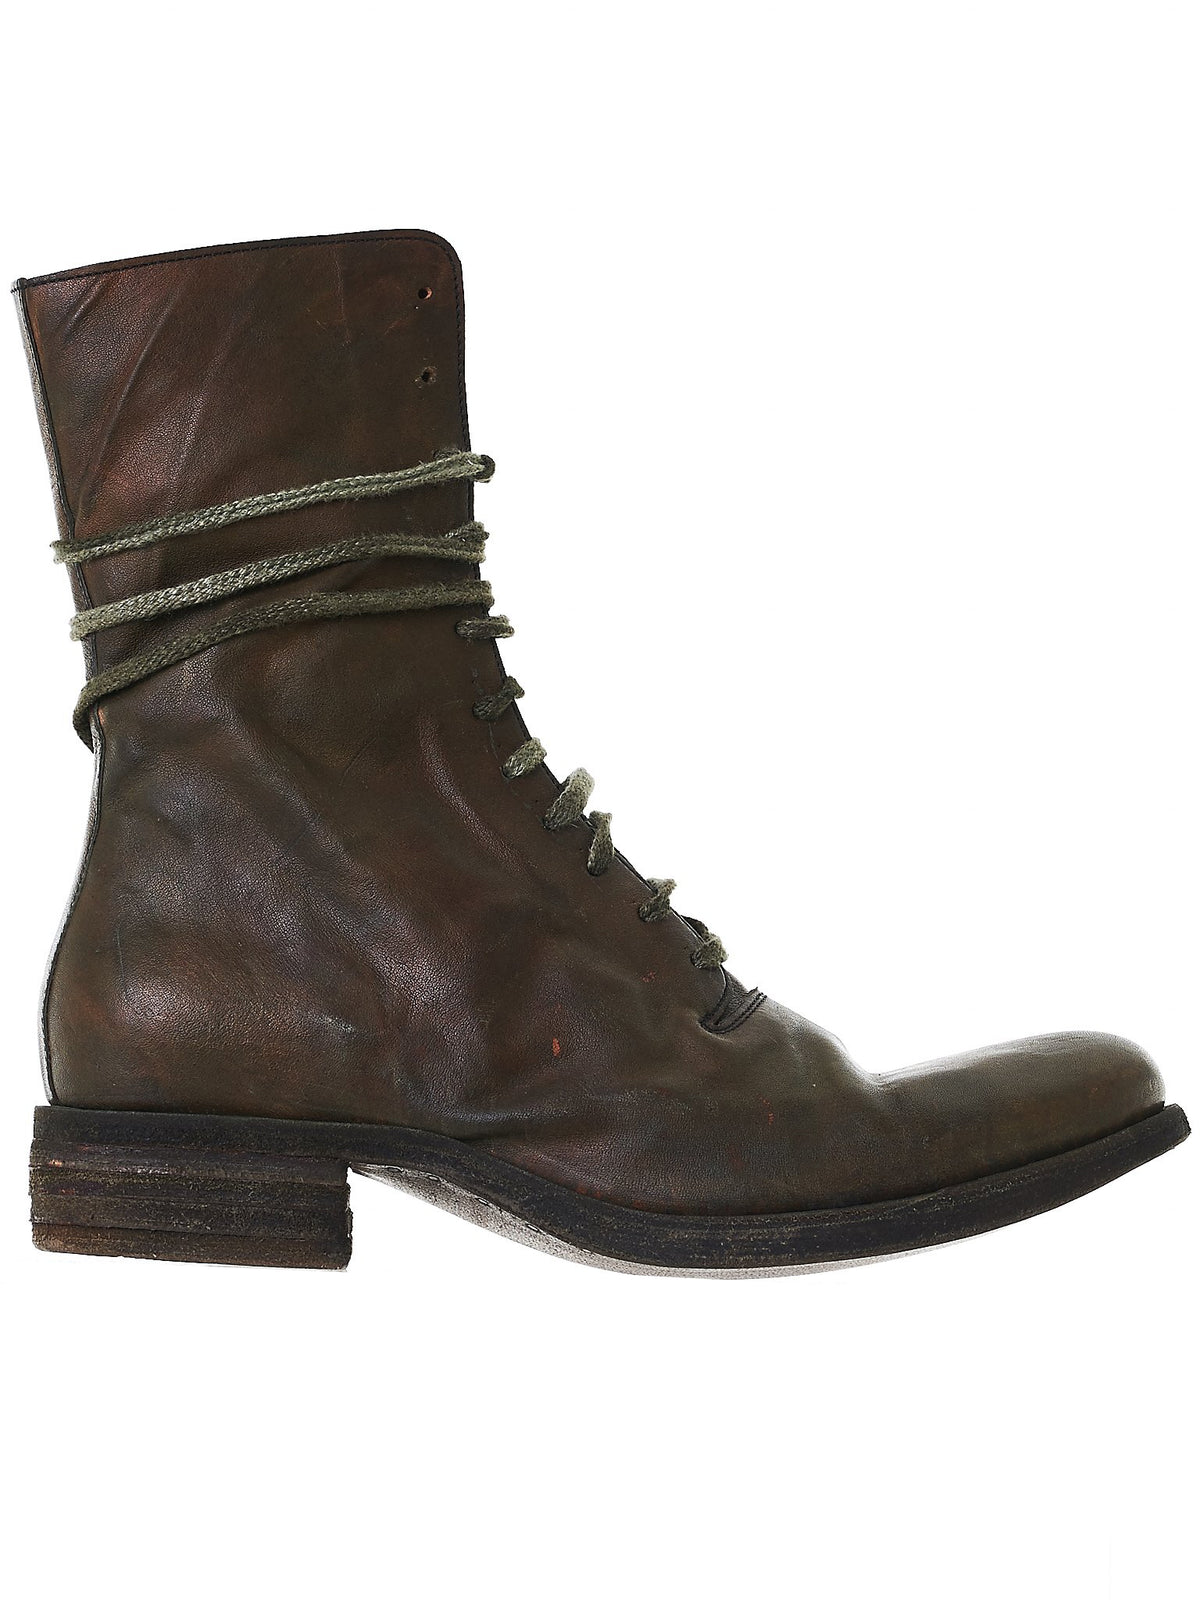 Waxed Leather Boots (ST11 GREY/GREEN)